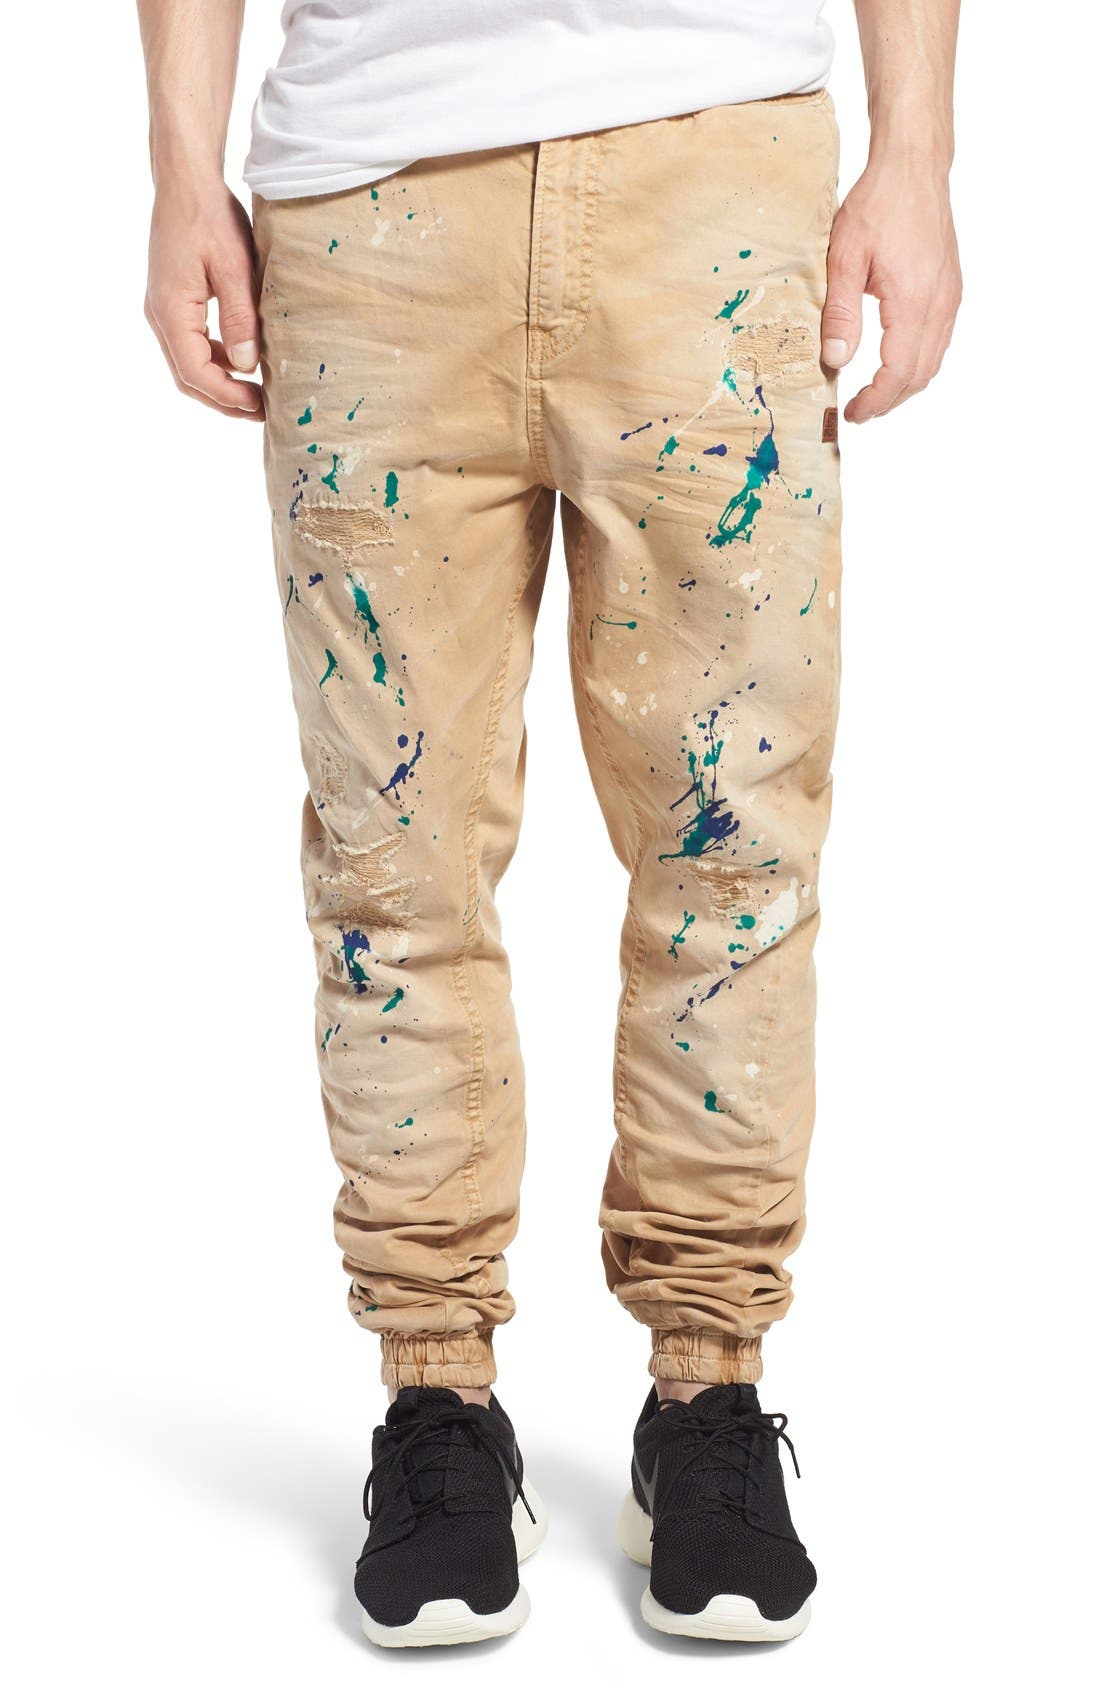 Alternate Image 1 Selected - PRPS 'Damiana' Splatter Paint Stretch Woven Jogger Pants